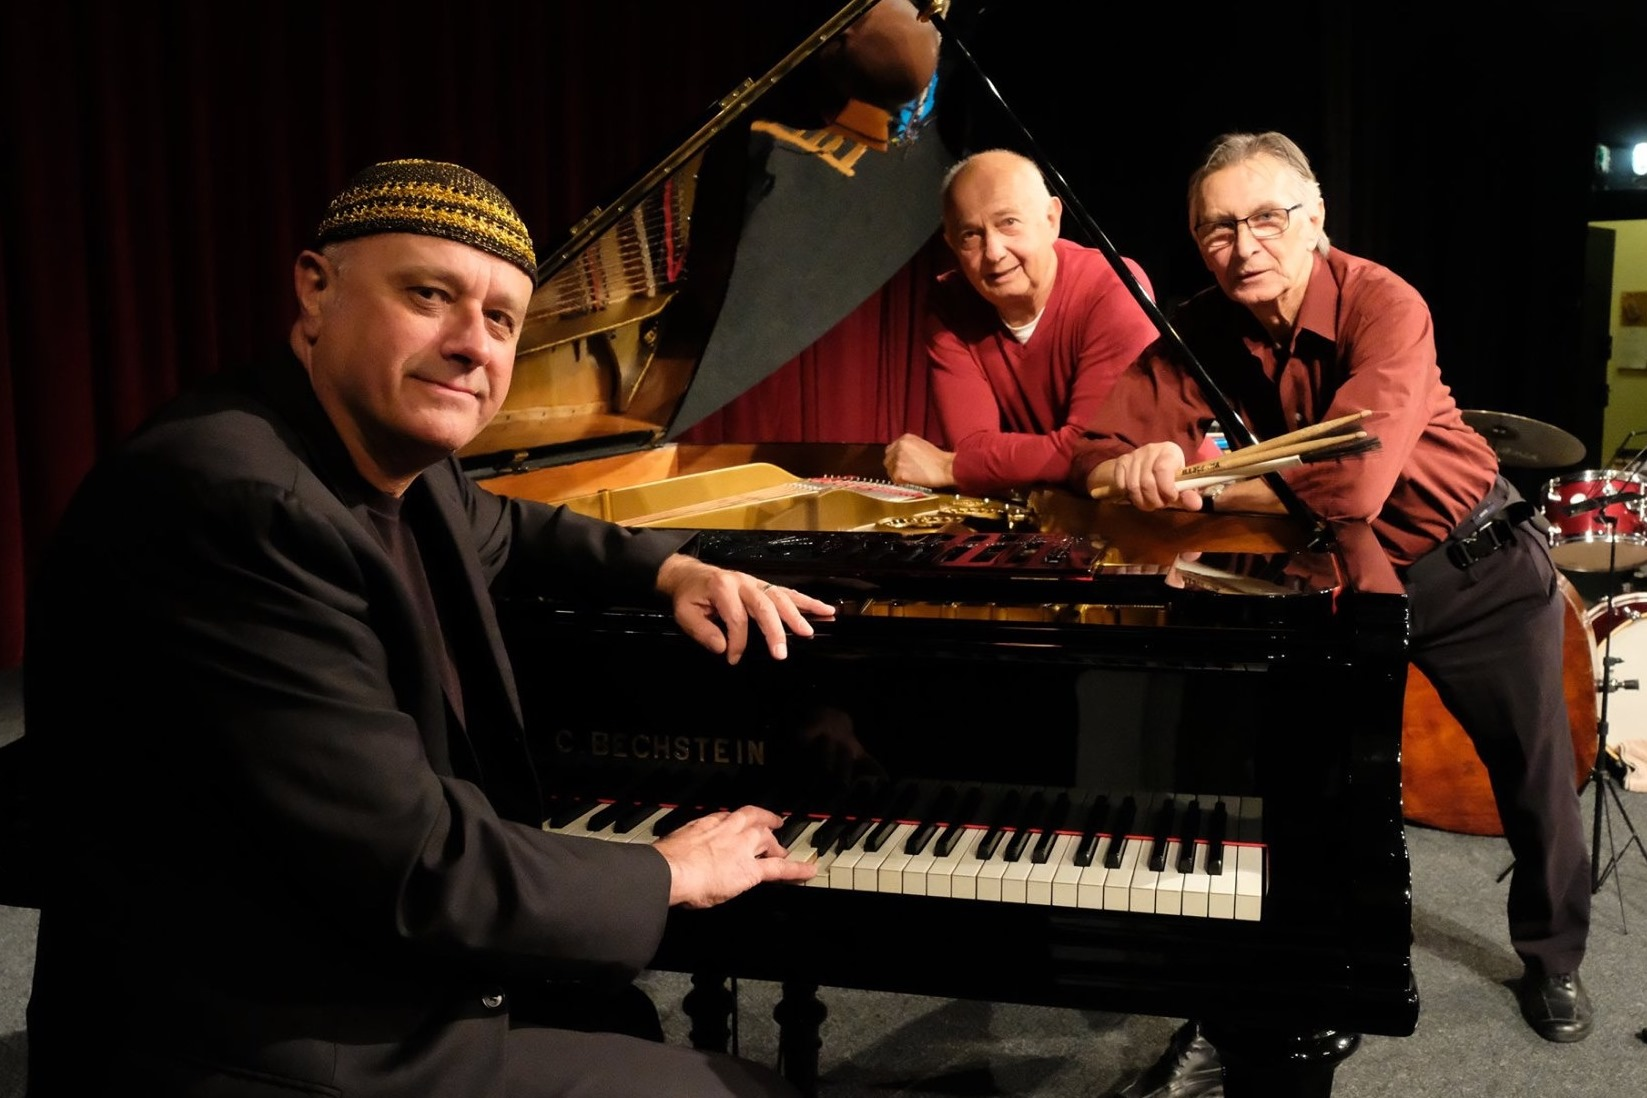 Roberto Magris with the MUH Trio, with Frantisek Uhlir and Jaromir Helesic